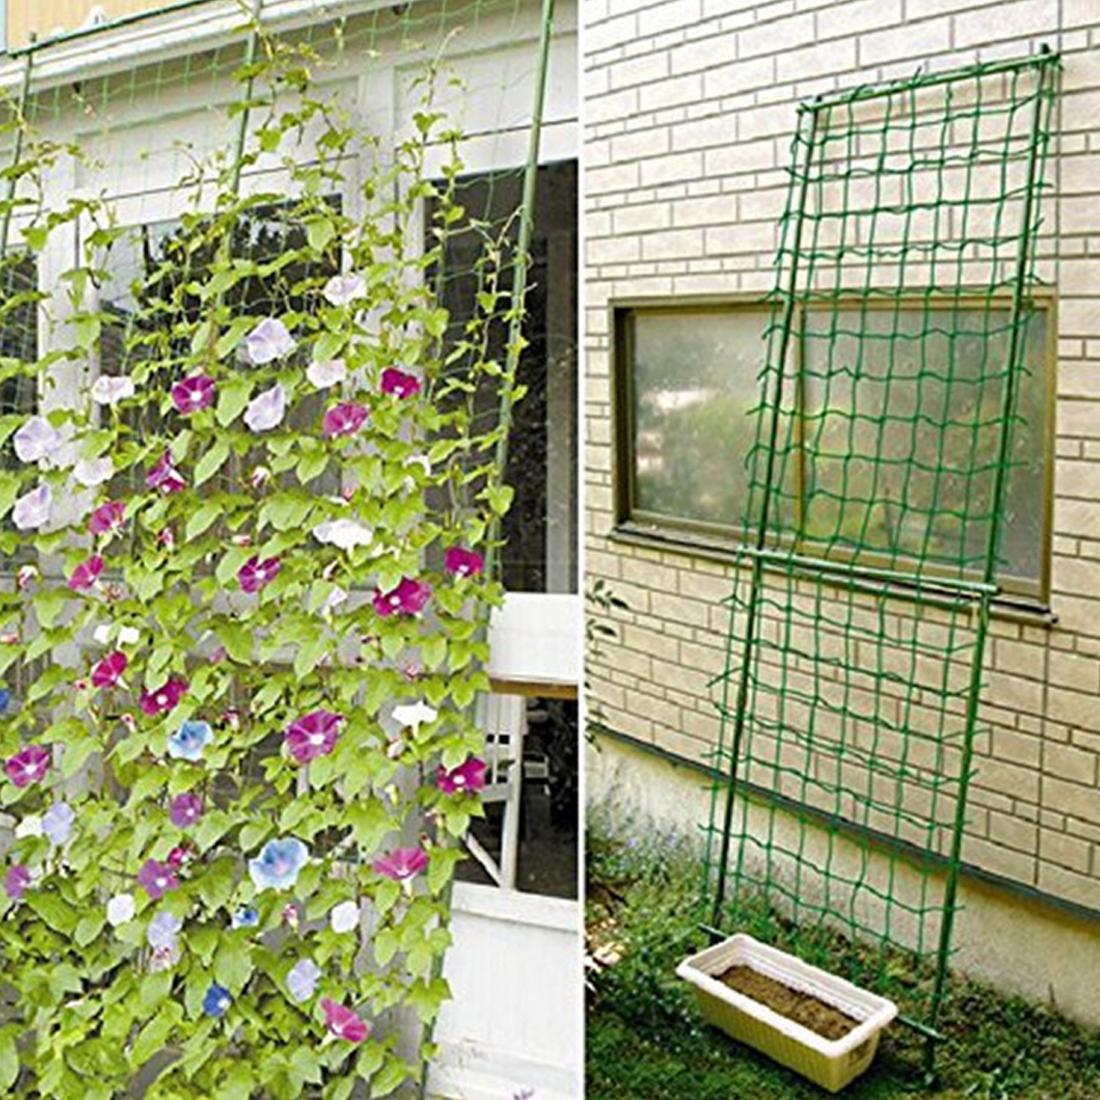 0.9*1.8m Garden Fence Millipore Nylon Net Climbing Frame Gardening Net Plant Fence Anti-bird Net Vegetable Plant Trellis Netting